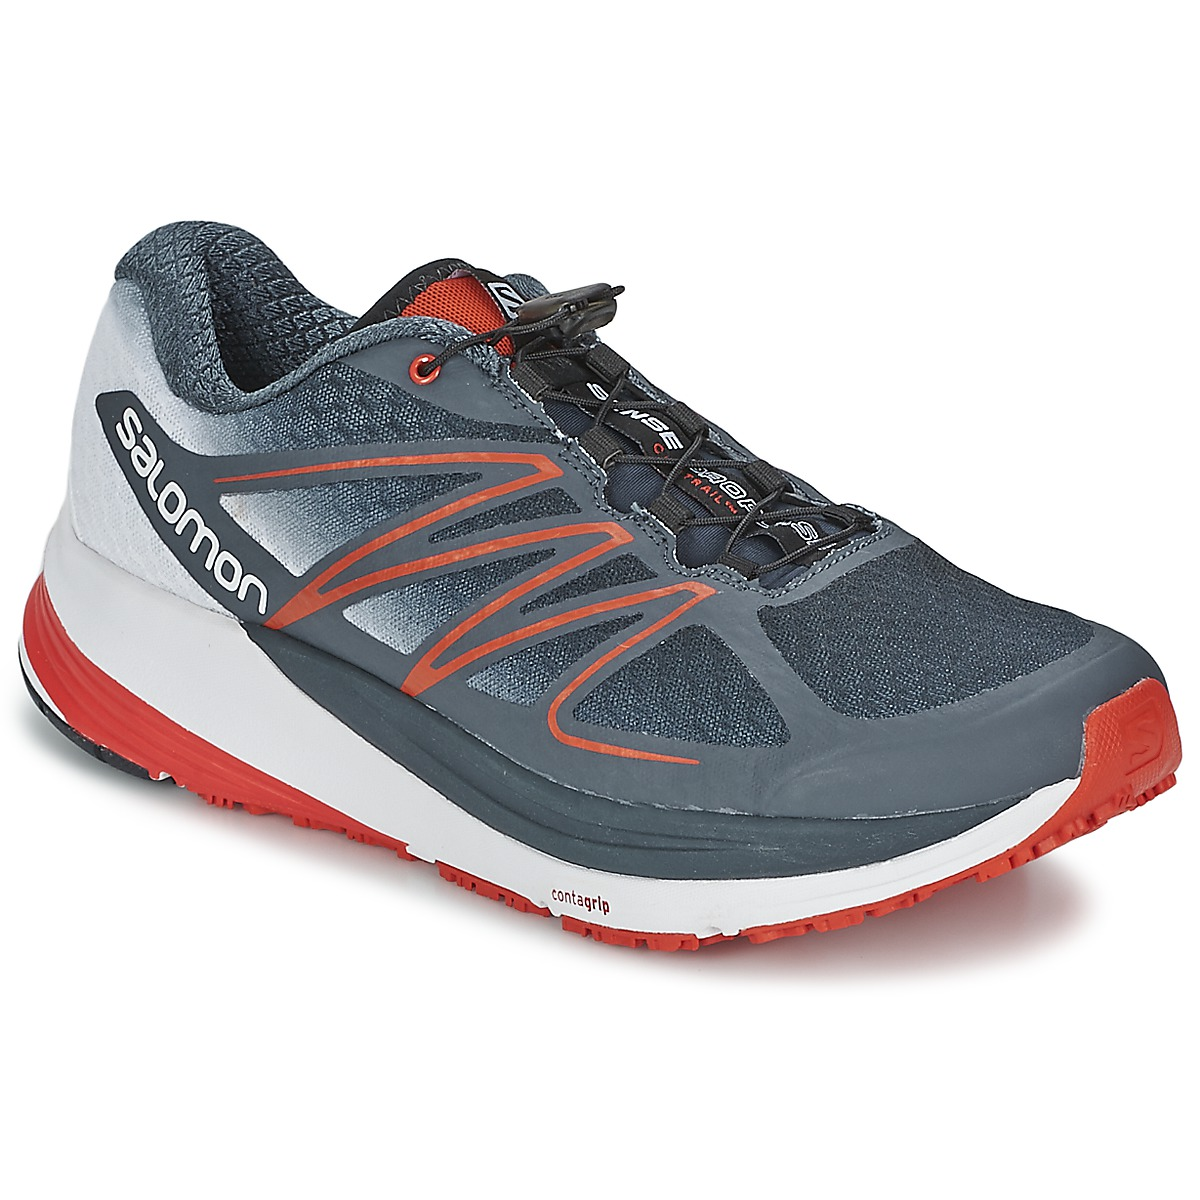 Chaussures-de-running Salomon SENSE PROPULSE Gris / Rouge